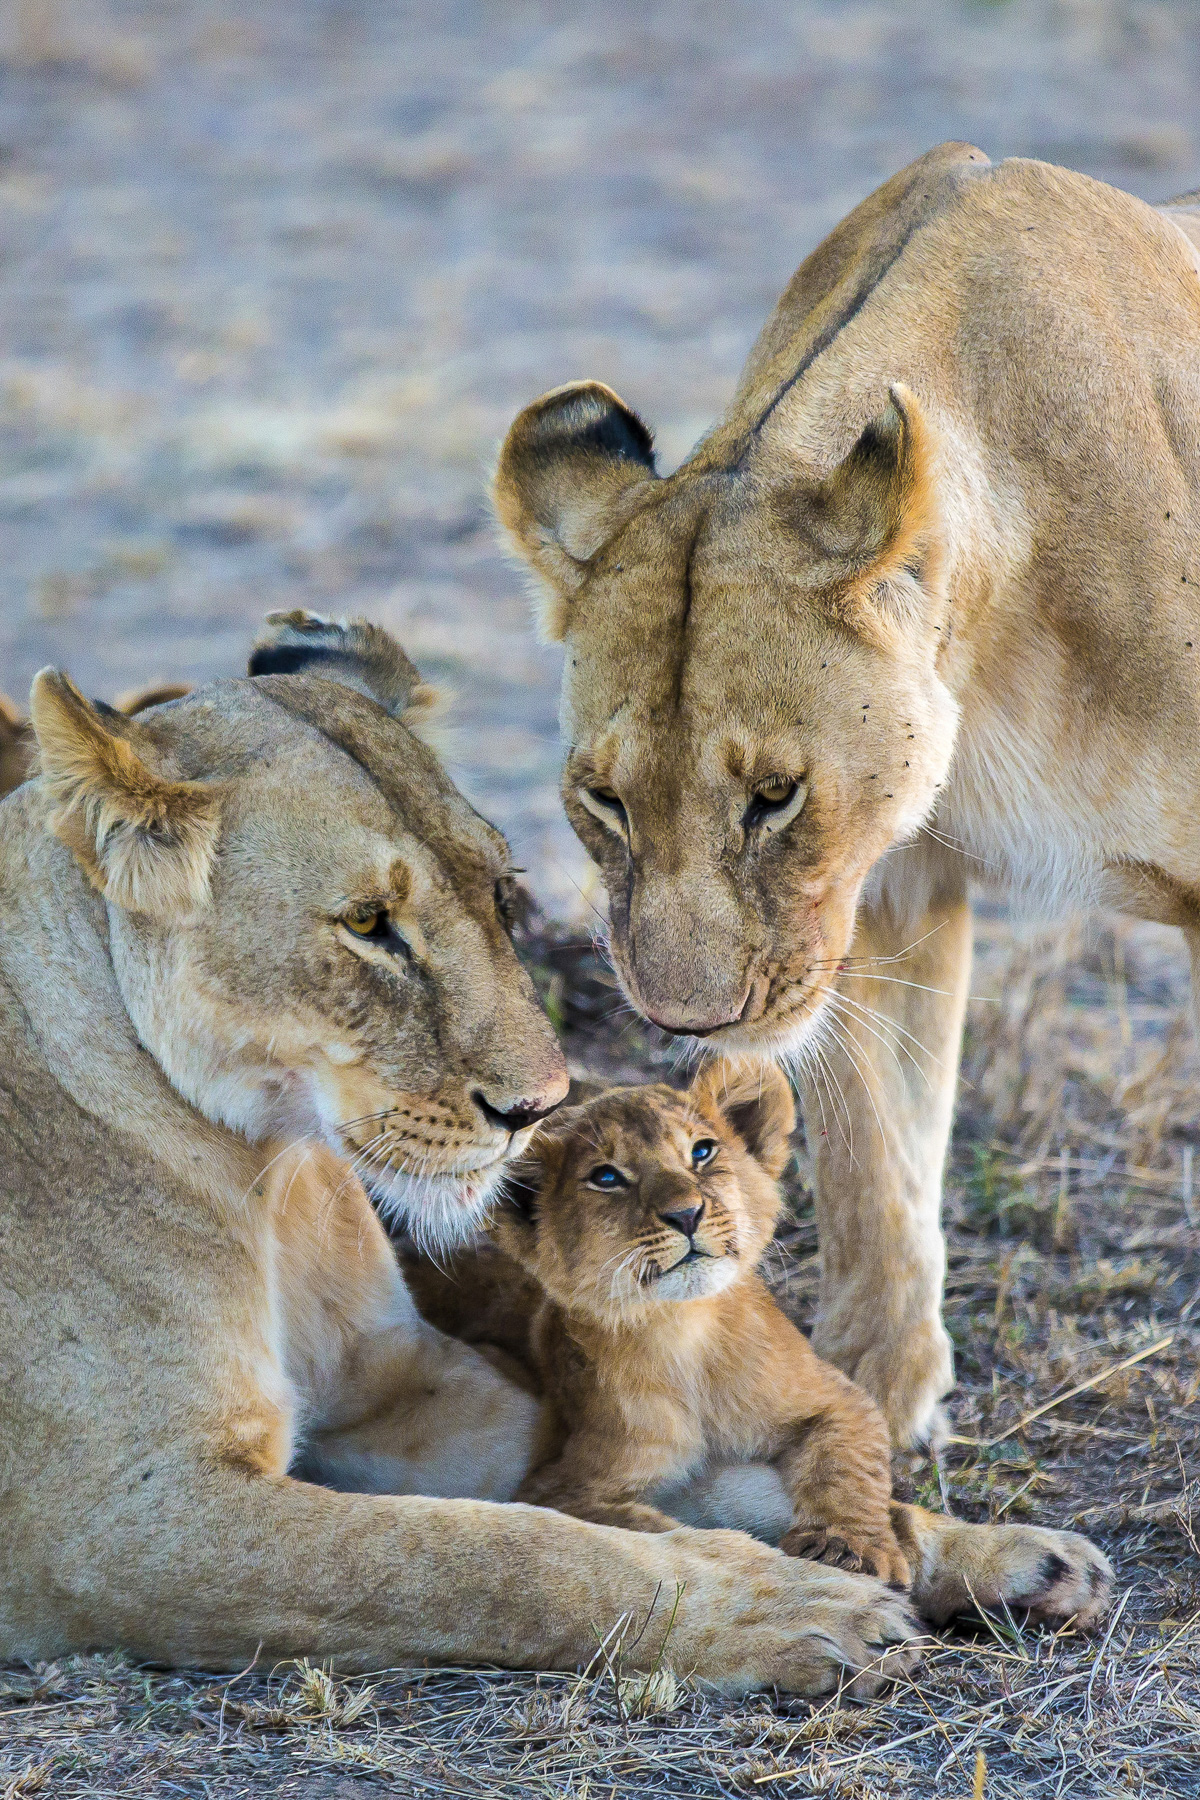 Two lionesses and a cub in the Masai Mara.